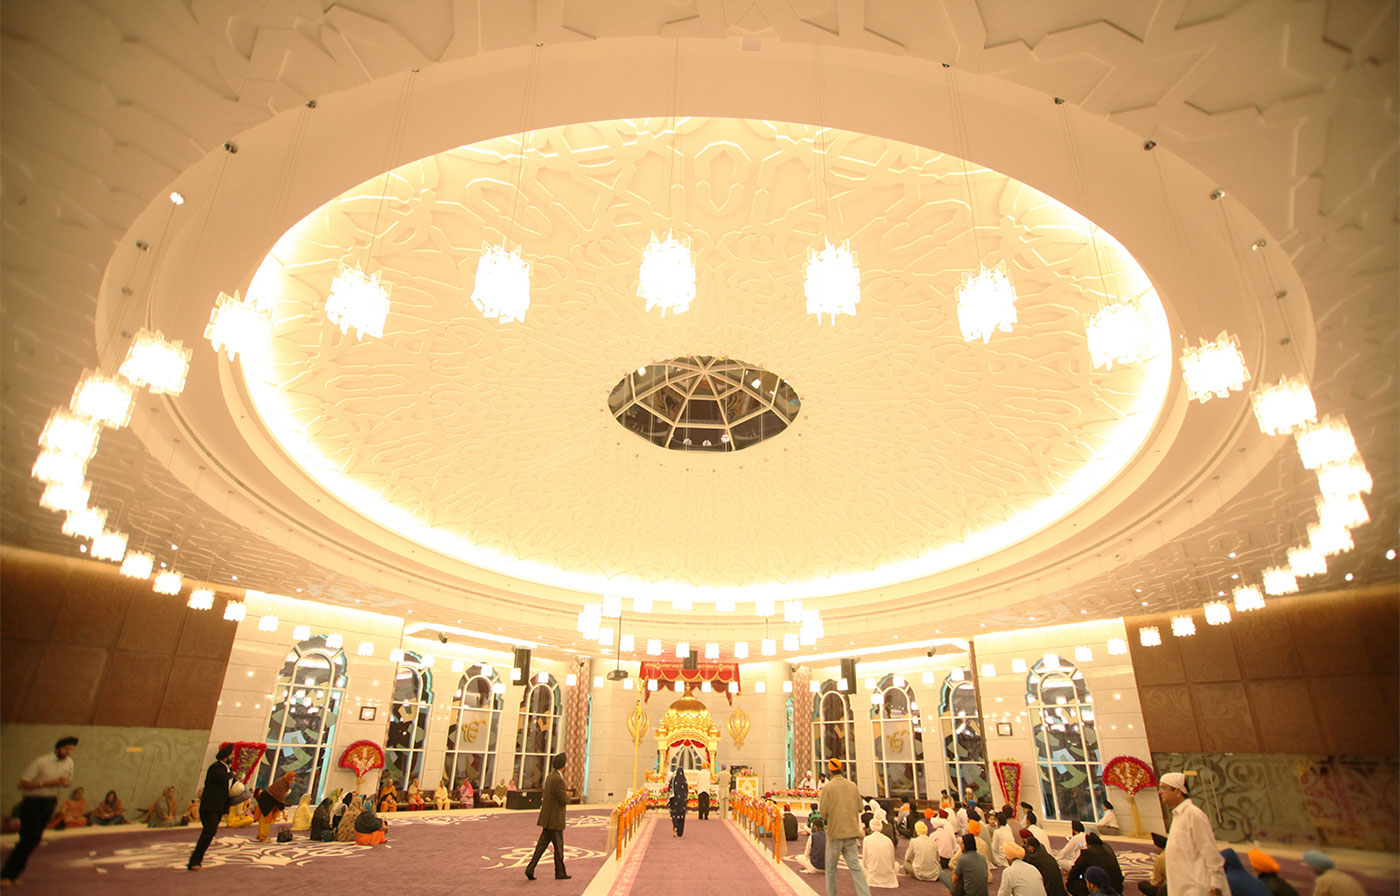 Interior architecture of Gurdwara Guru Nanak Darbar.